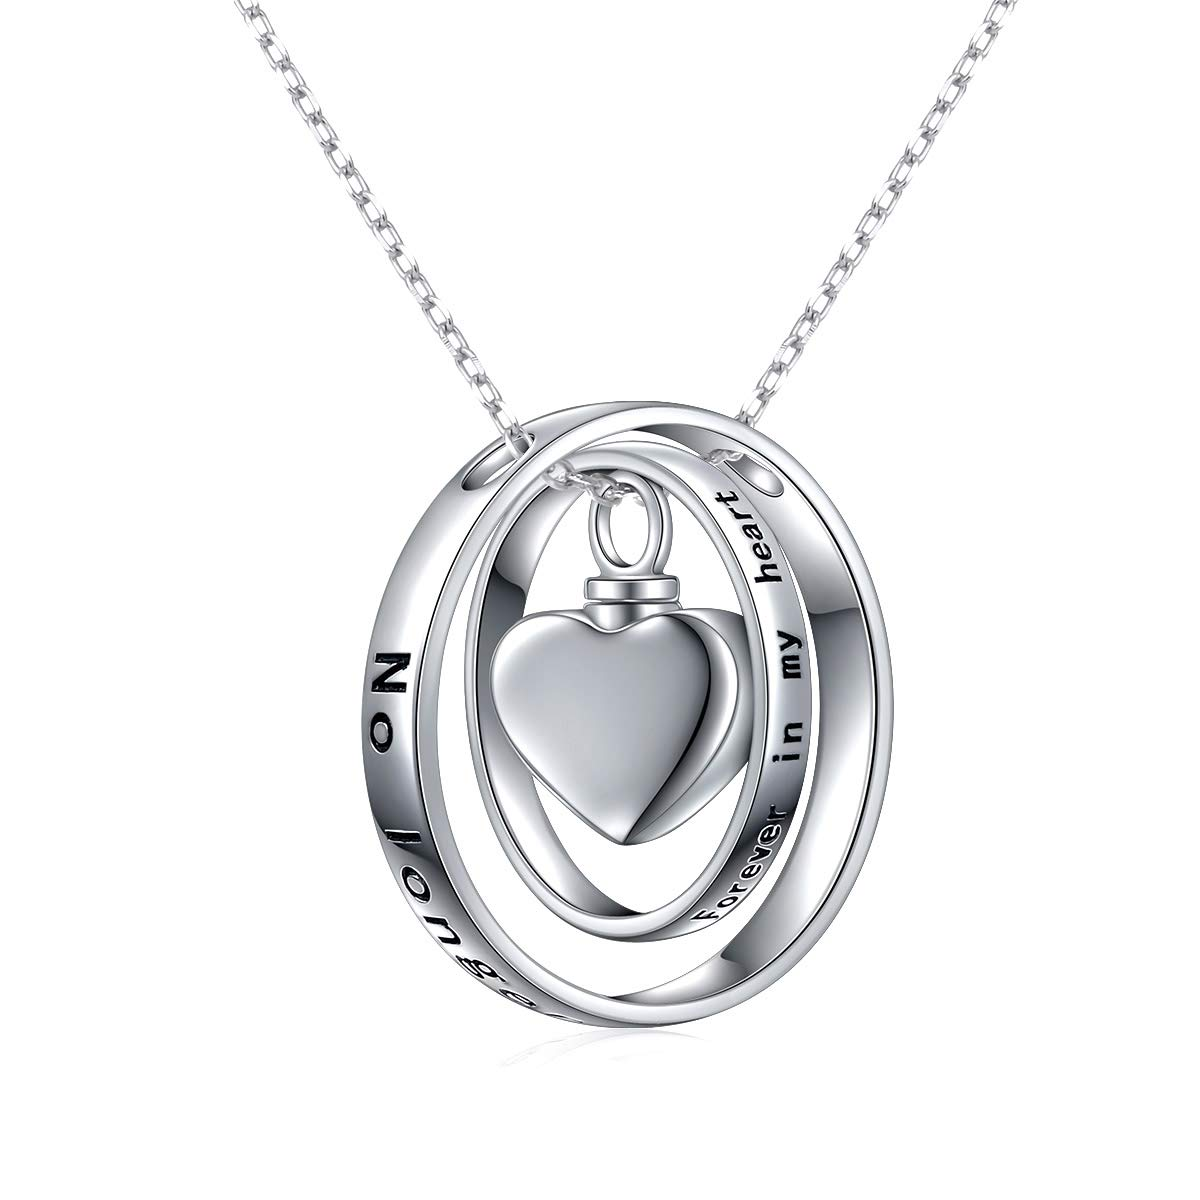 Cremation Jewelry Sterling Silver Always in My Heart Urn Necklace Ashes Keepsake Pendant Necklace, 20'' (no Longer by My Side Forever in My Heart 20'')